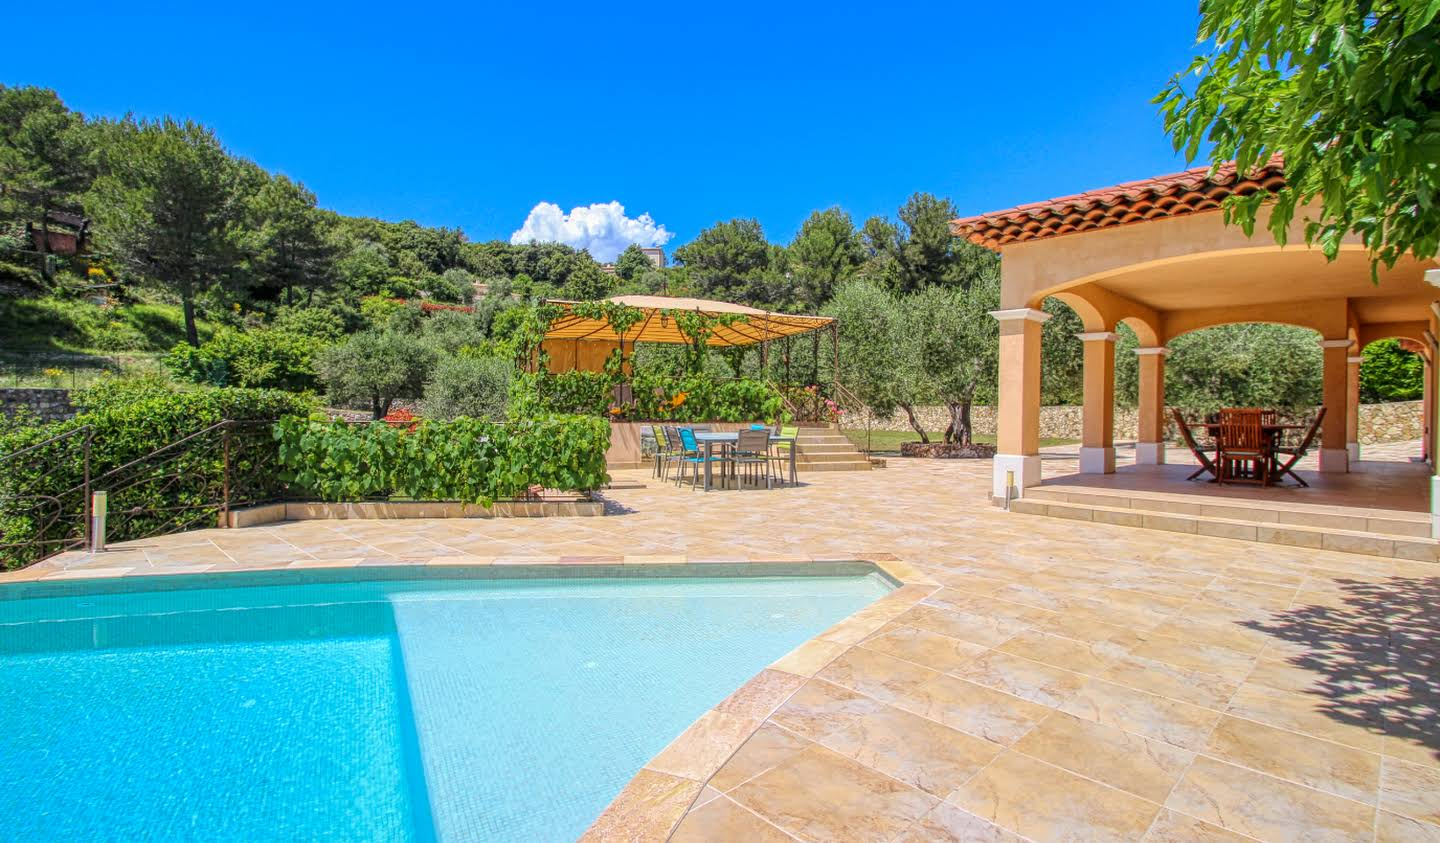 Property with pool and garden La Turbie